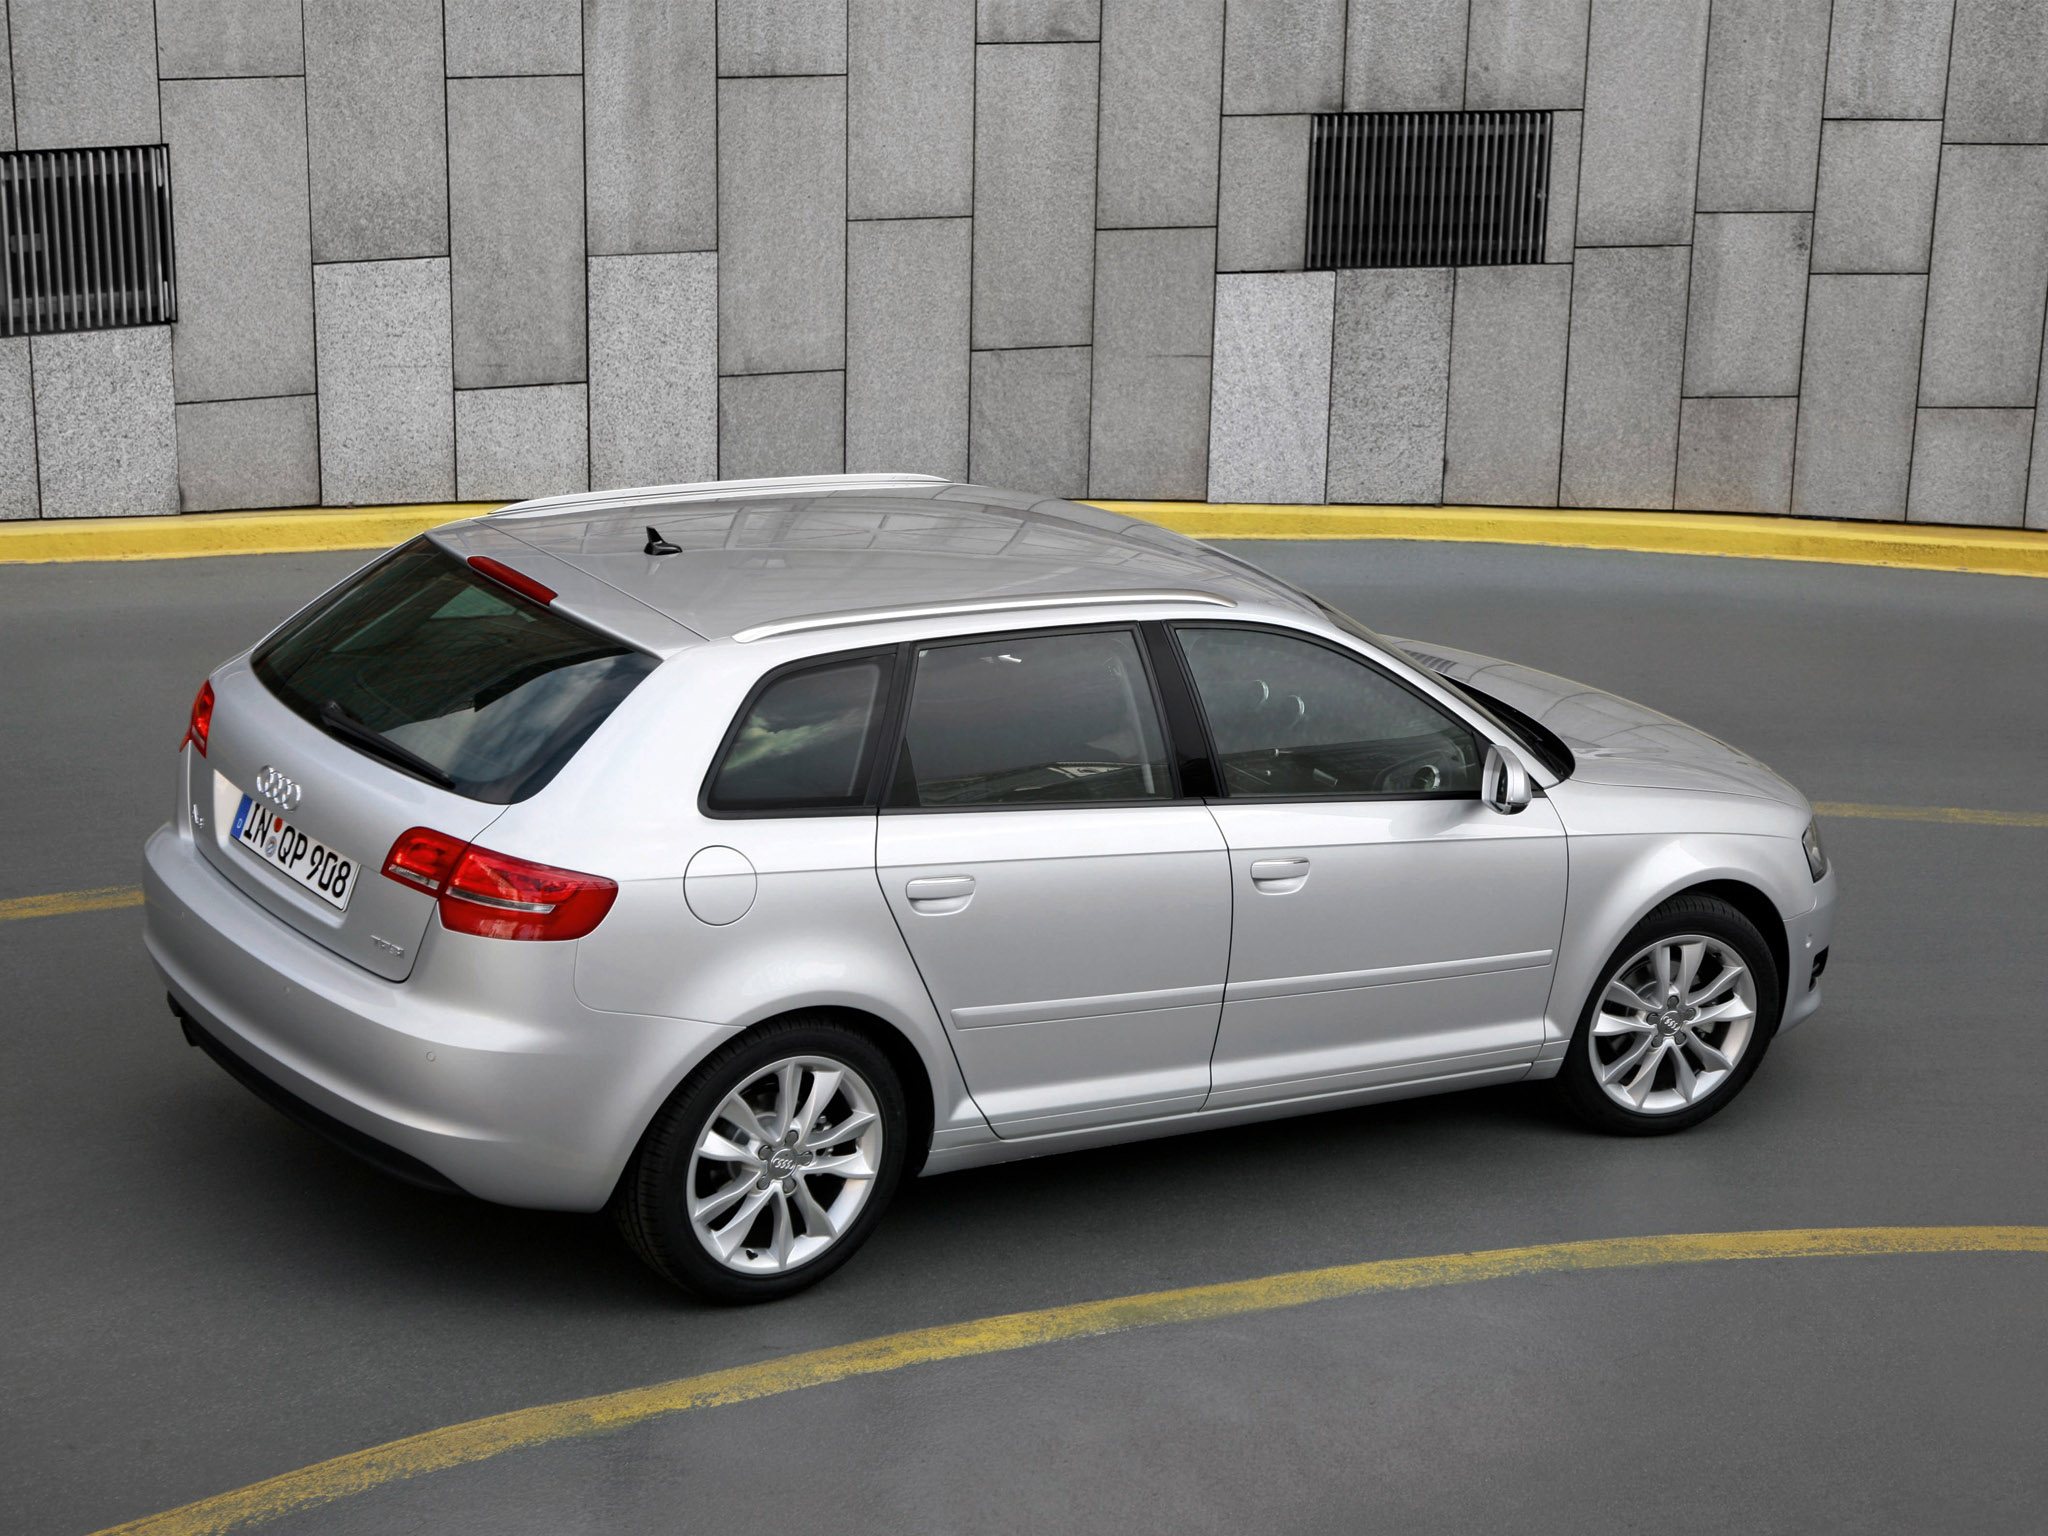 audi a3 sportback 8pa 2010 audi a3 sportback 8pa 2010 photo 08 car in pictures car photo gallery. Black Bedroom Furniture Sets. Home Design Ideas